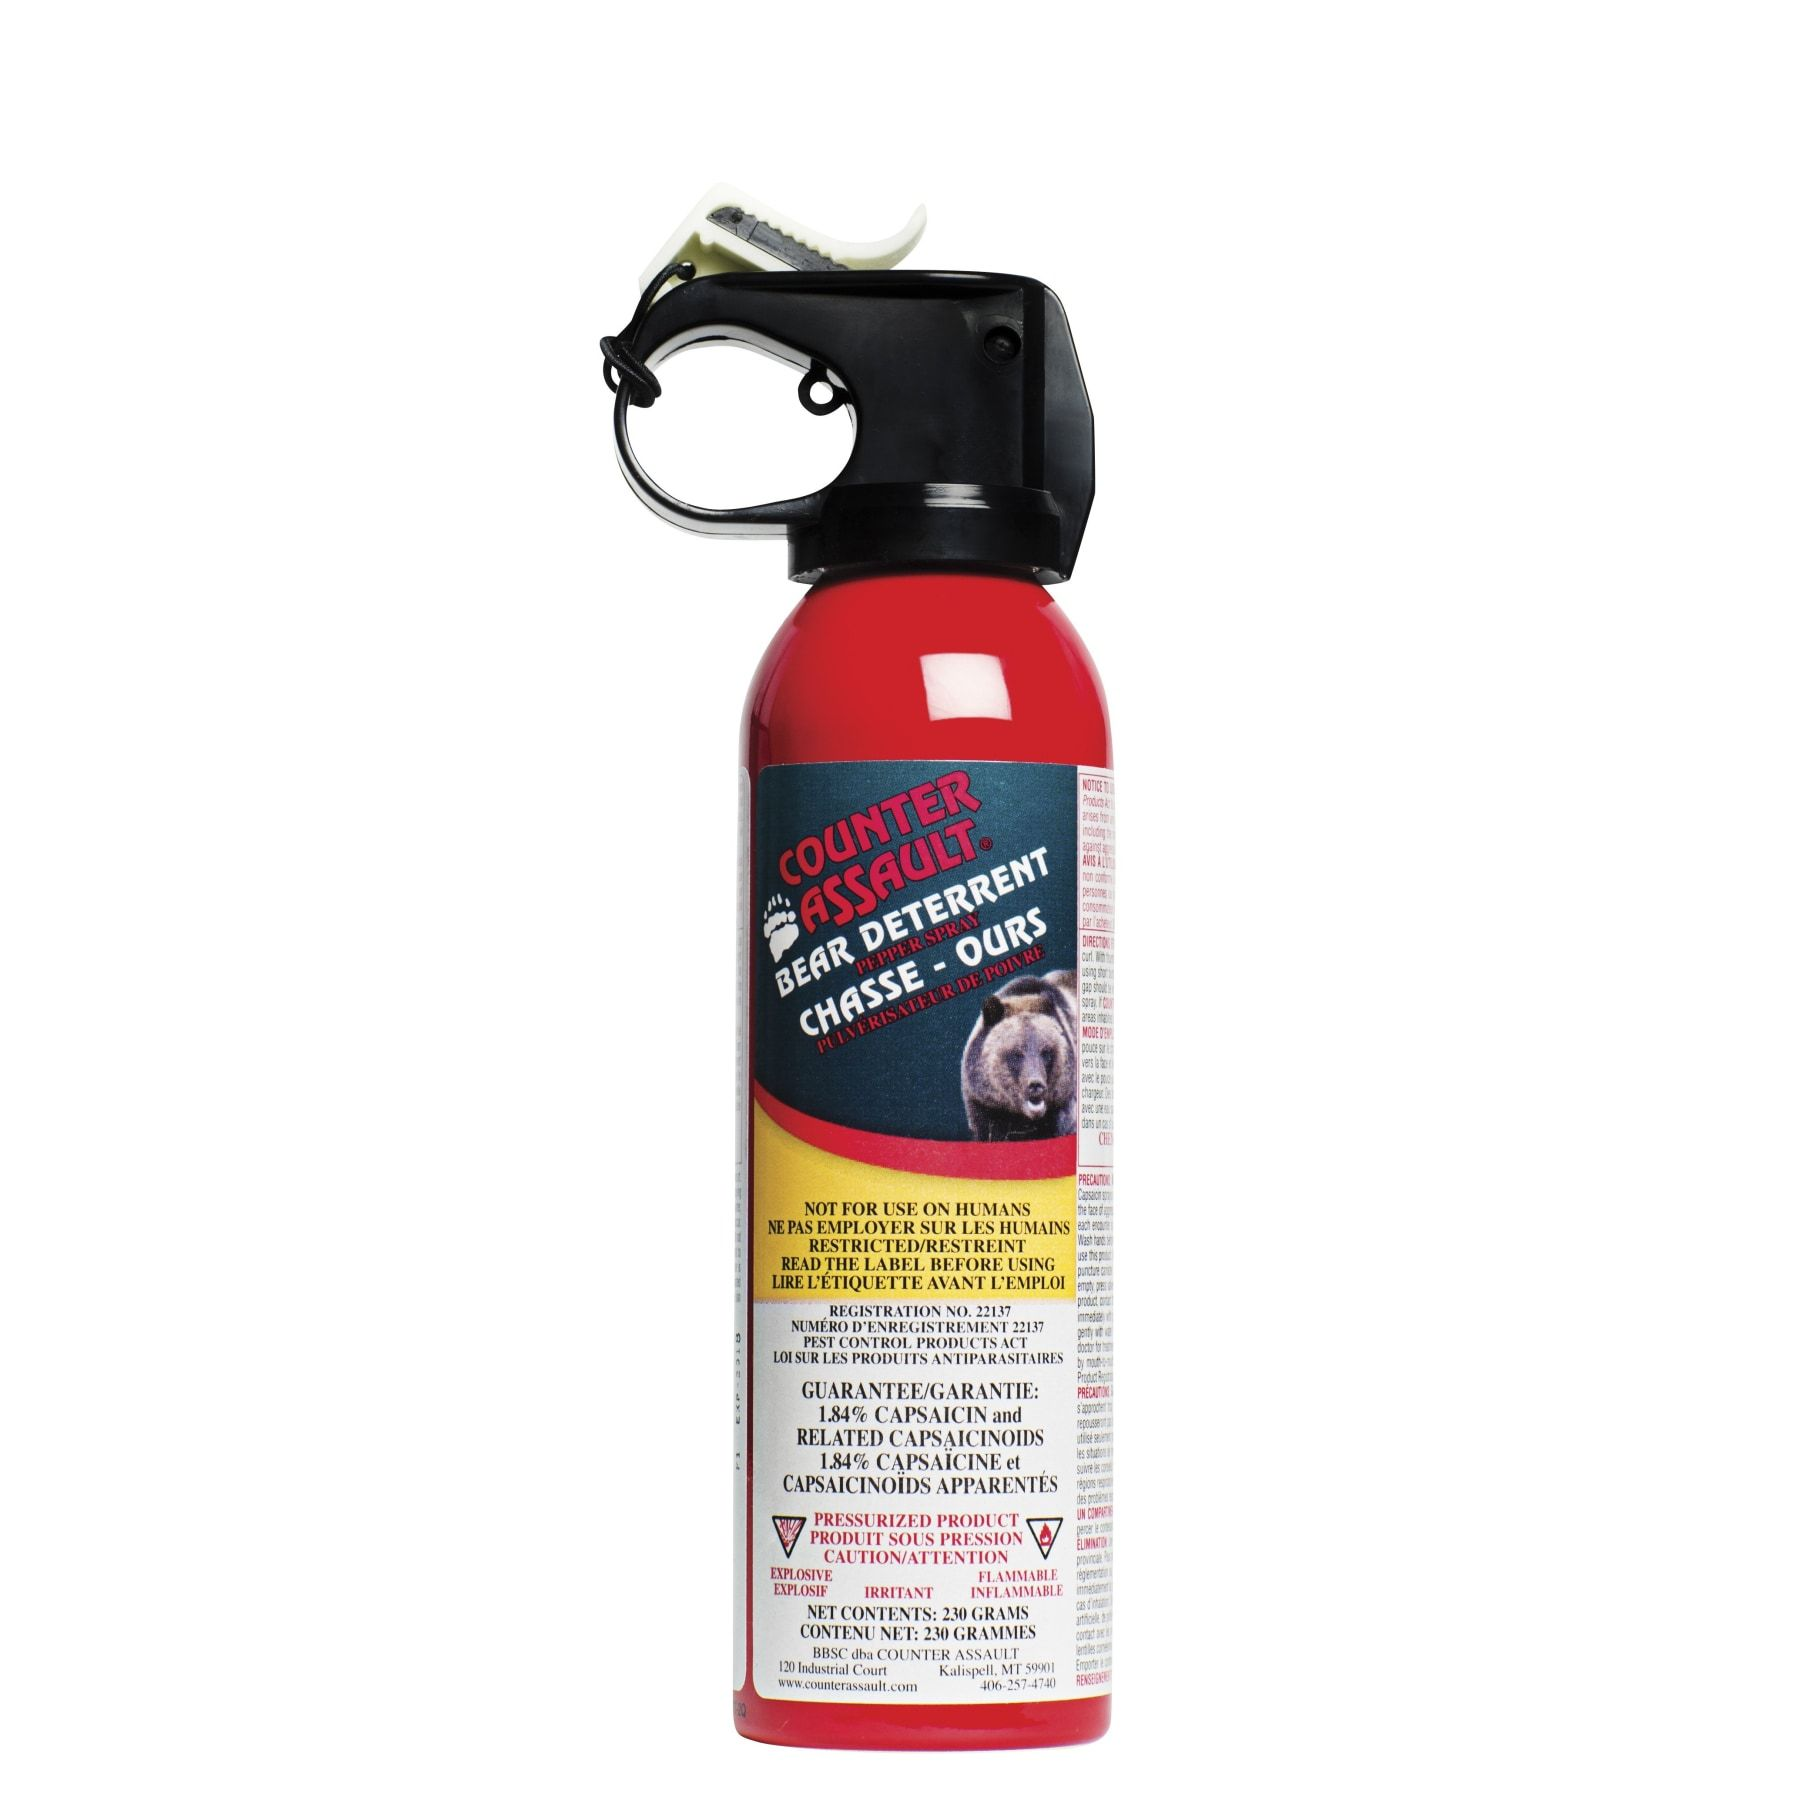 COUNTER ASSAULT BEAR DETERRENT PEPPER SPRAY - 230G